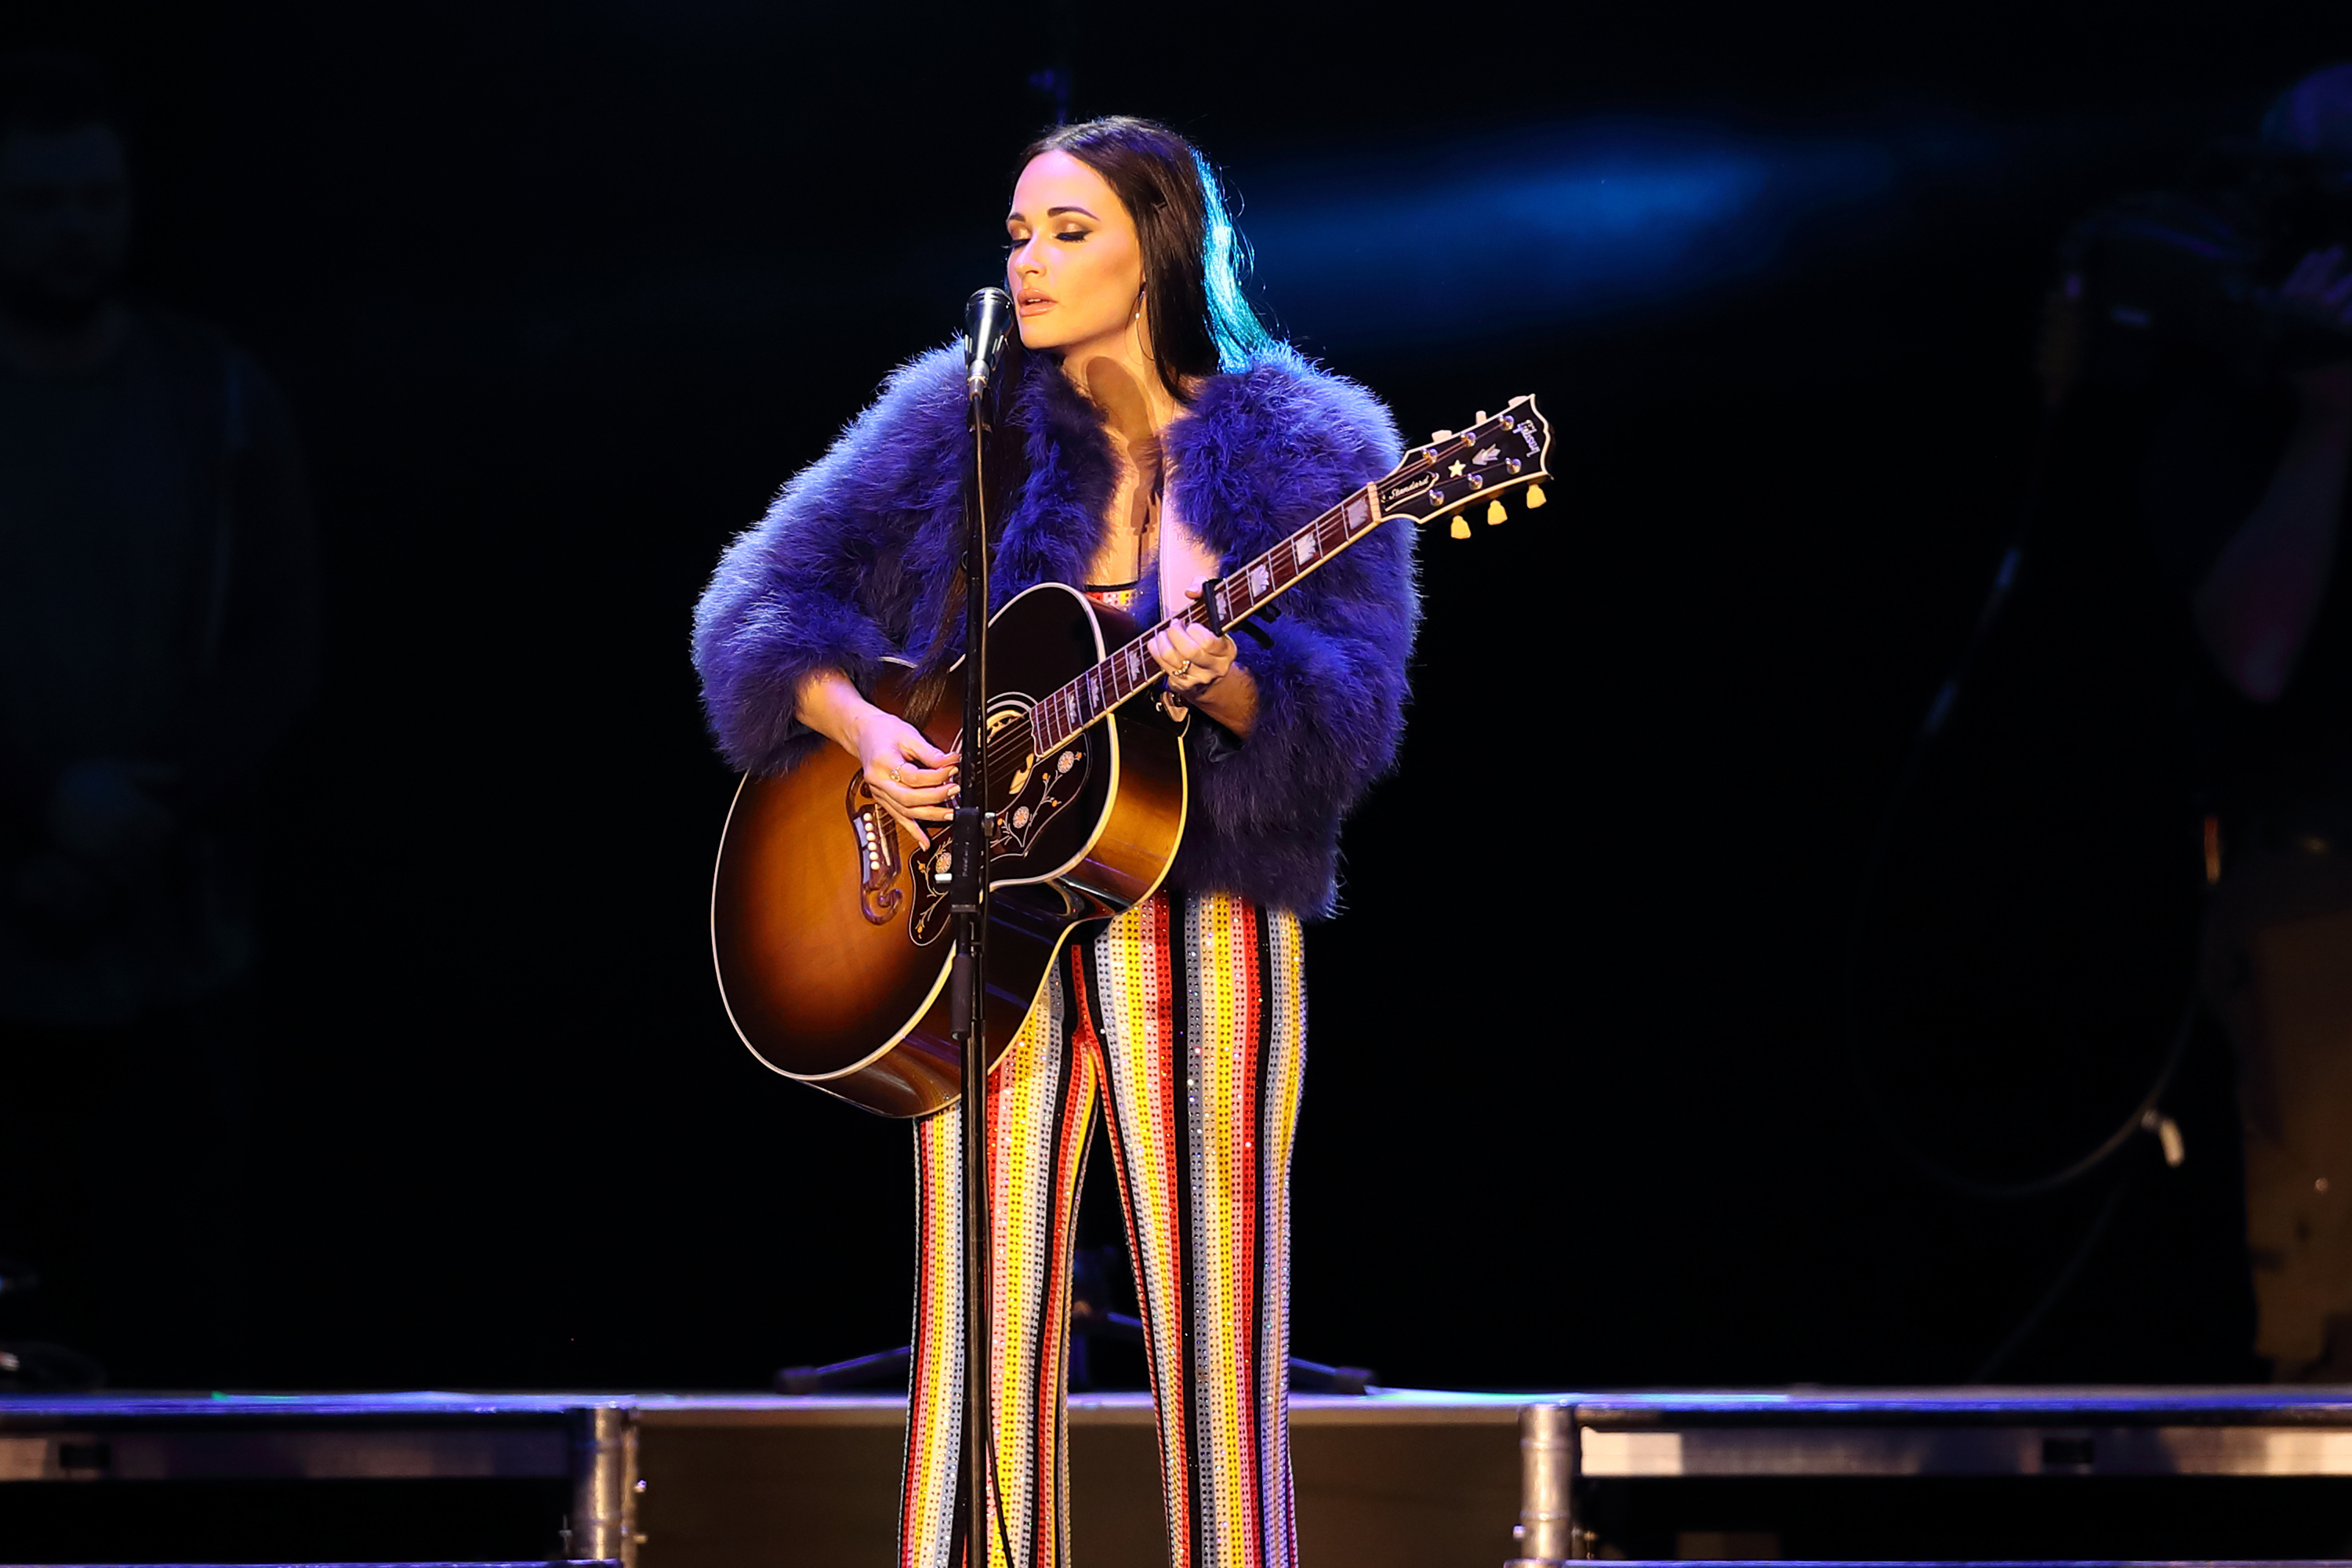 Kacey Musgraves\' \'High Horse\' Video Is Shaking... | News | MegaCountry